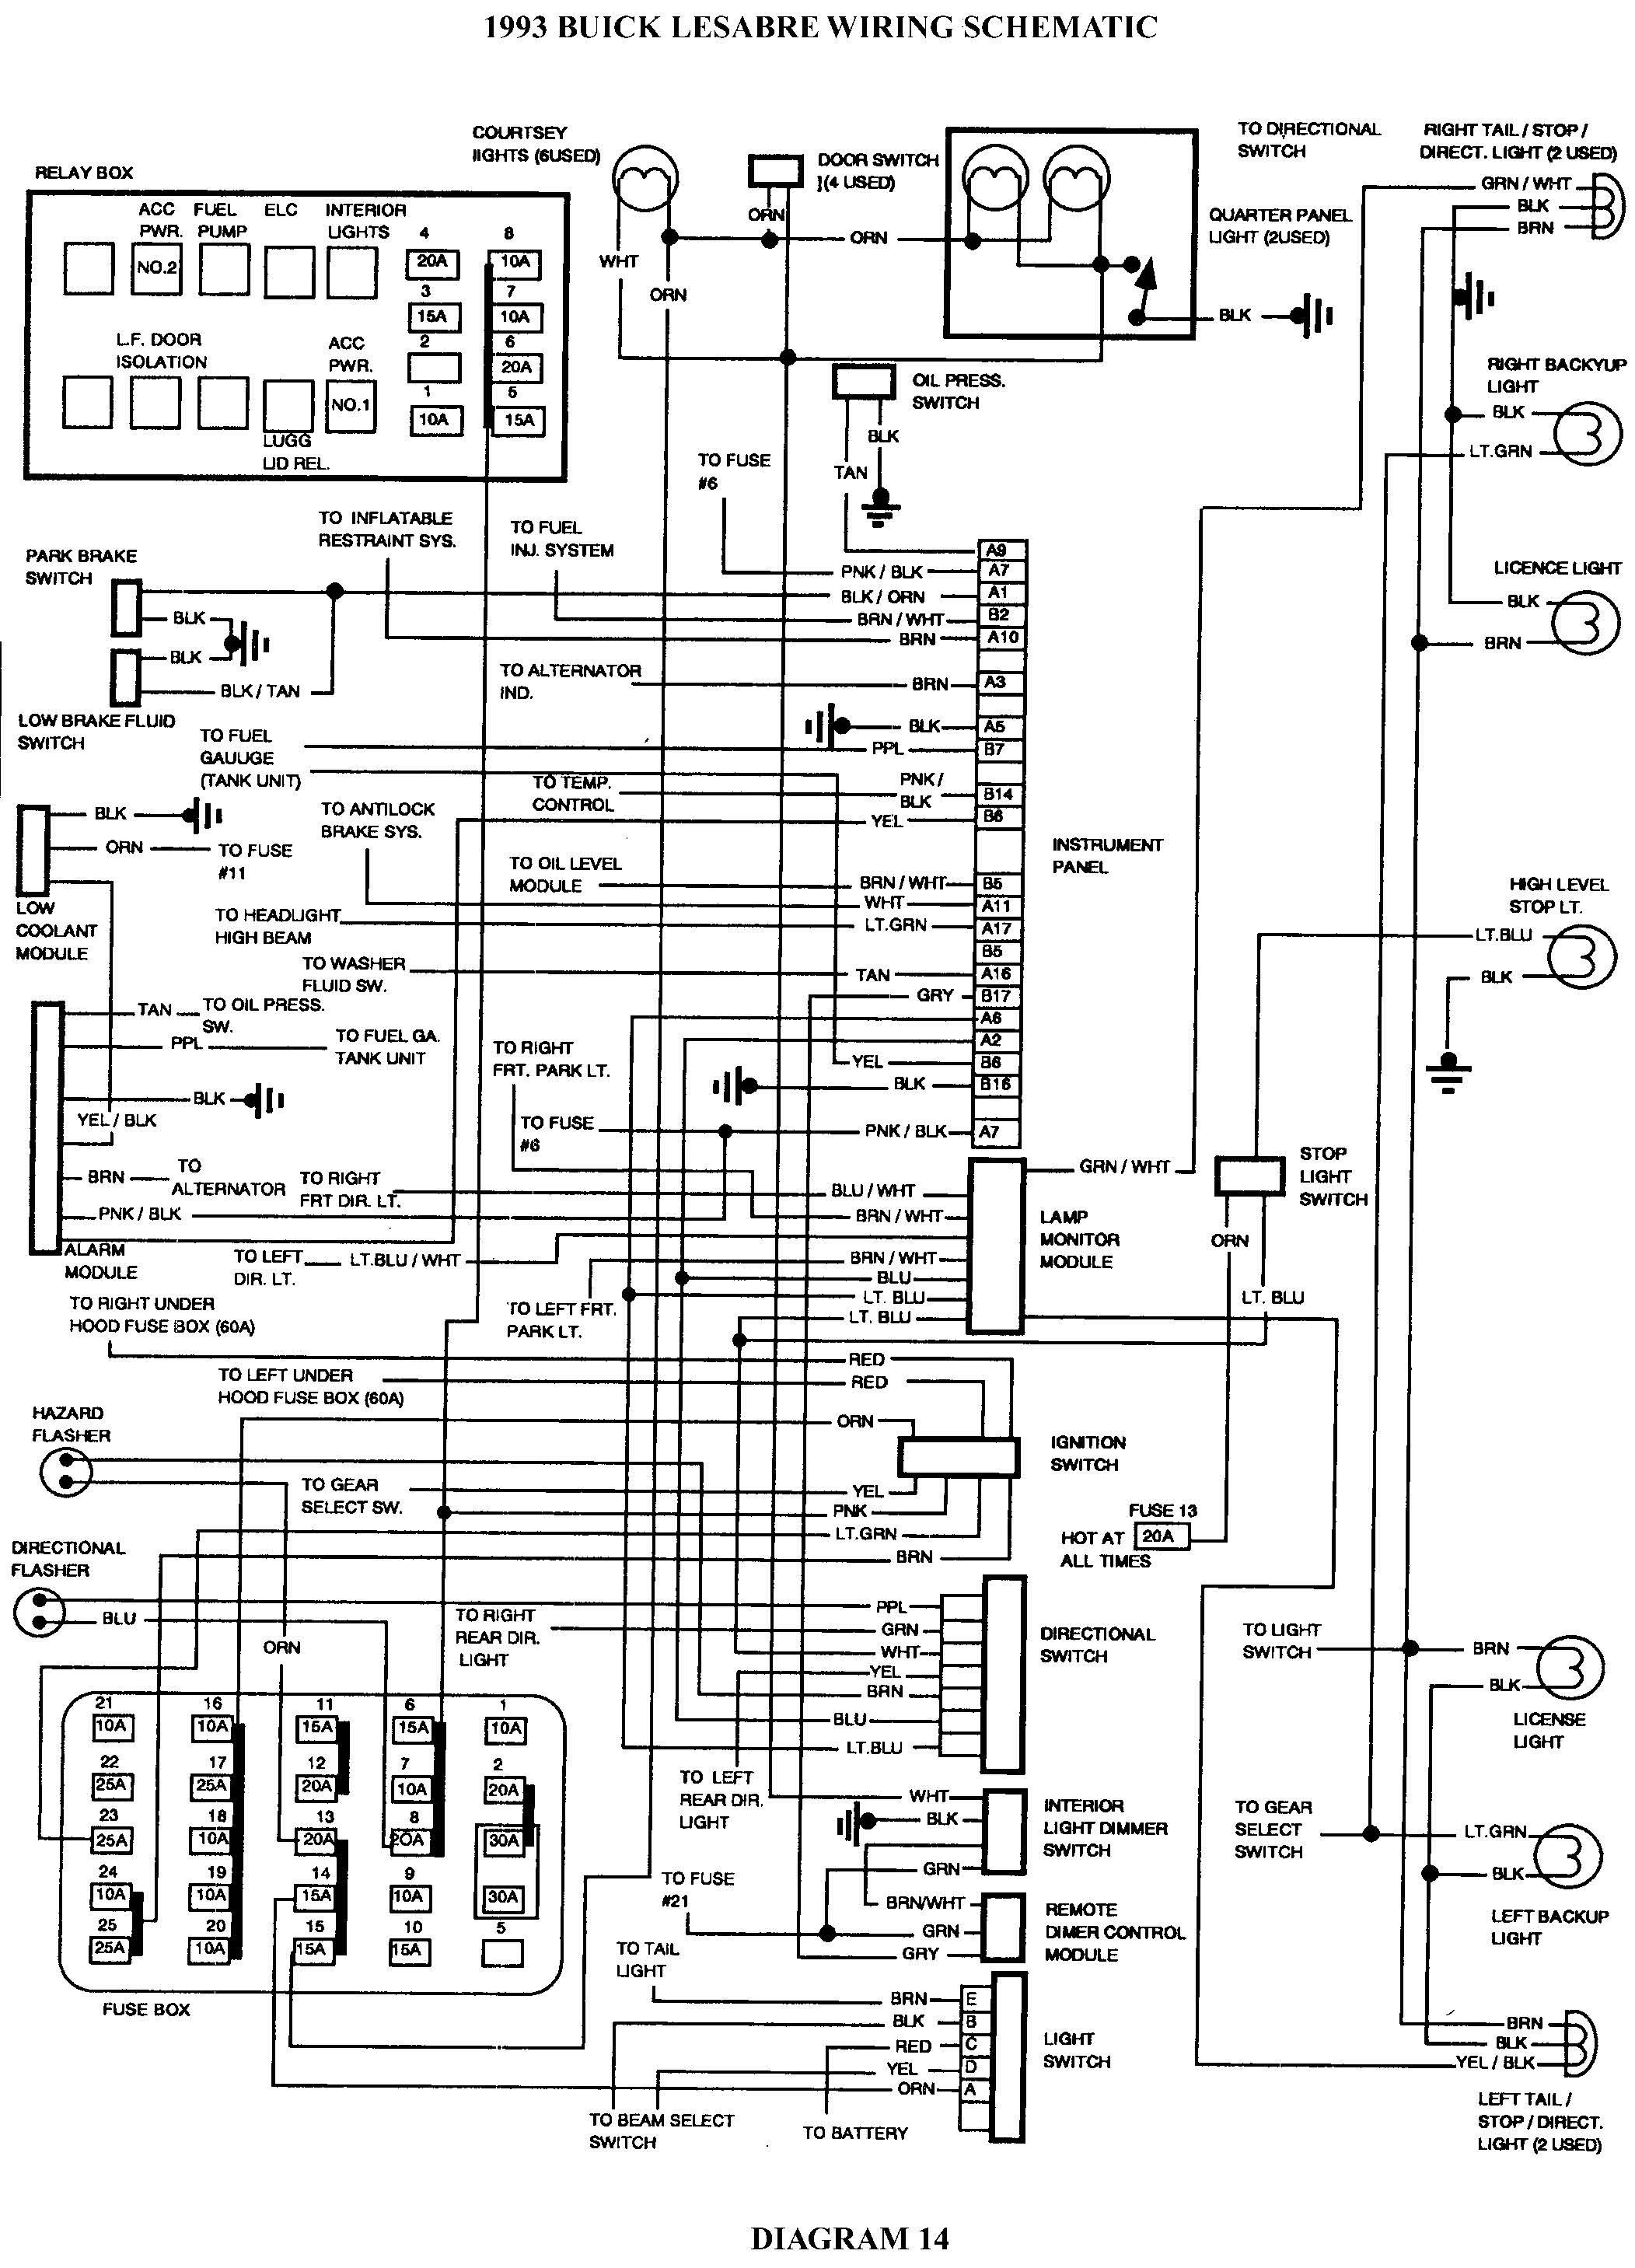 93 buick century wiring diagram as well 93 buick century wiring diagram